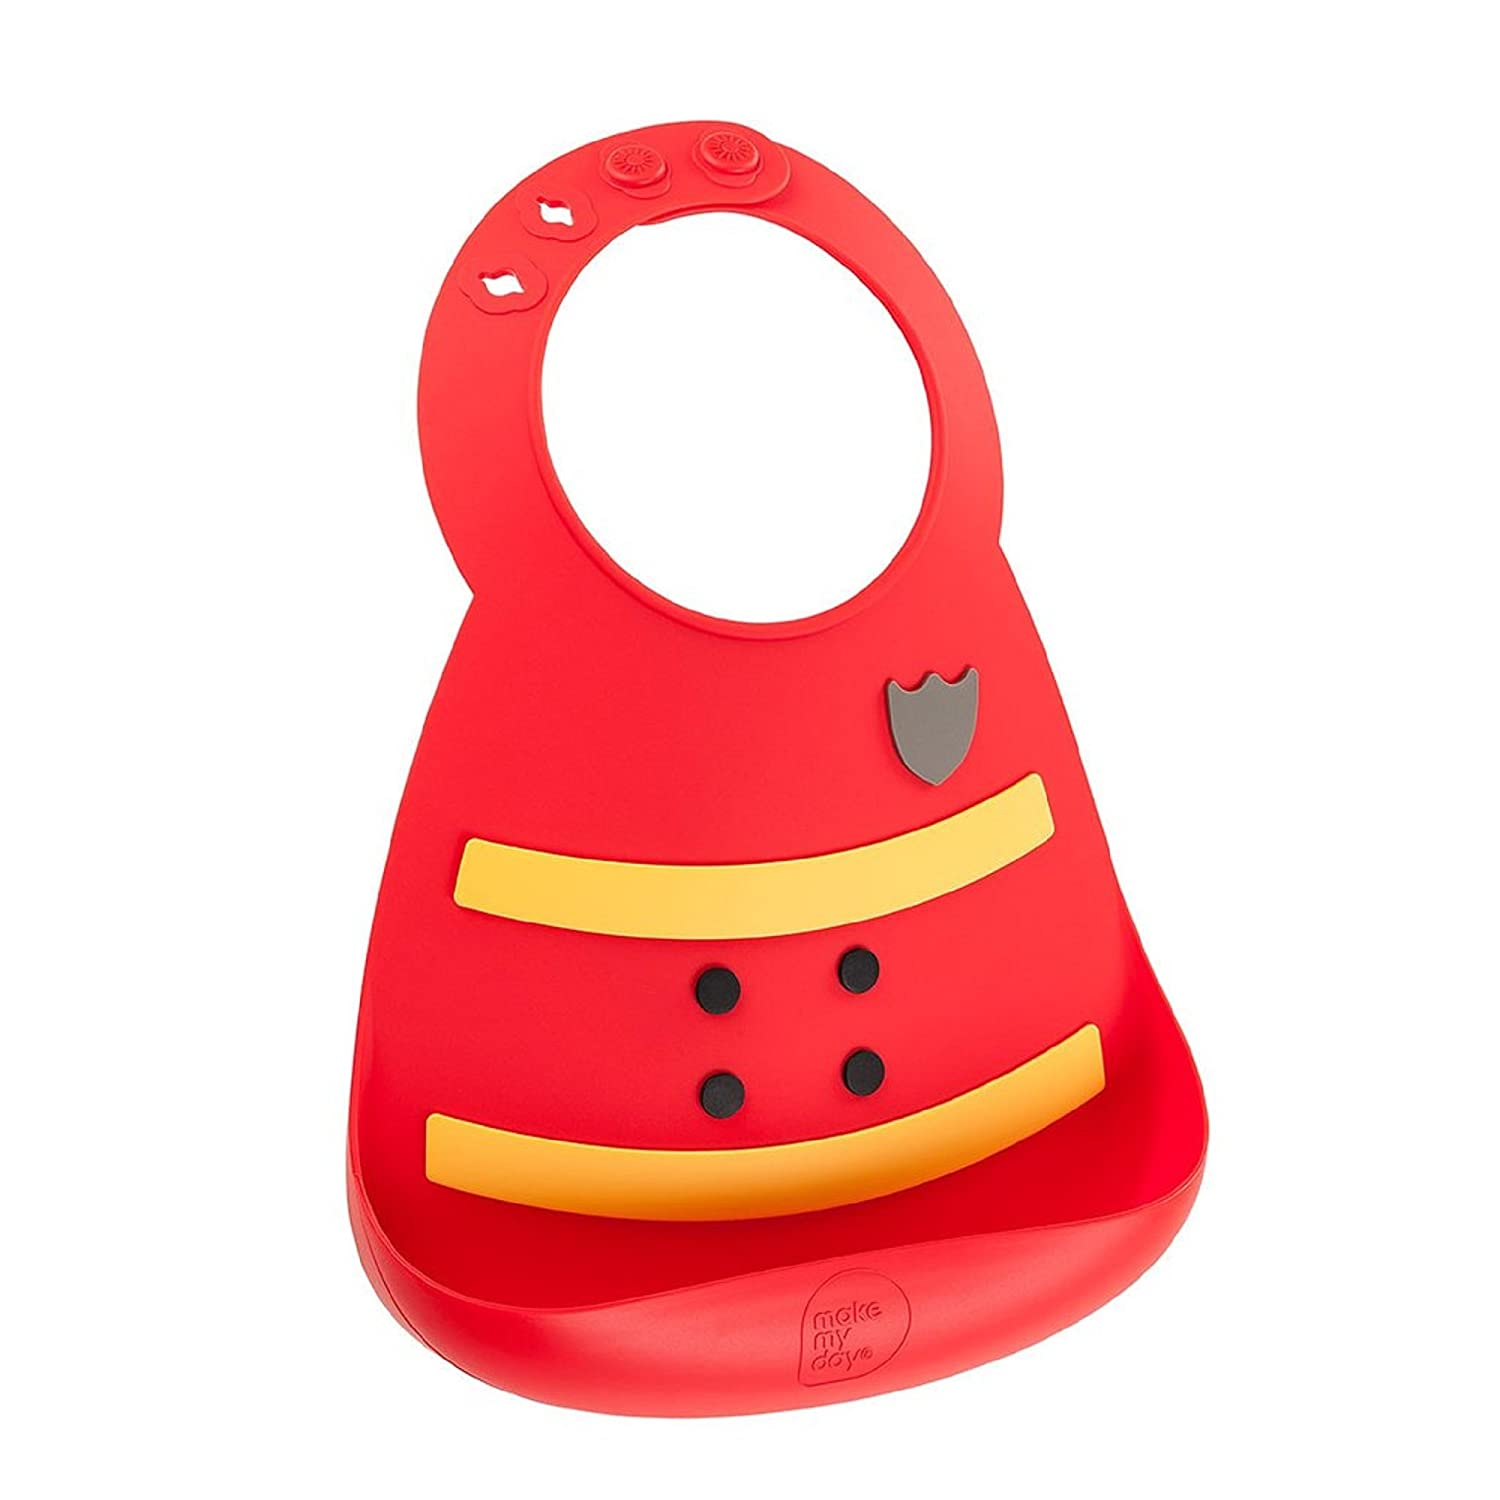 No. 8 Brands 74574 Baby Bib Fireman  Amazon.ca  Home   Kitchen e1b1bc1fc717